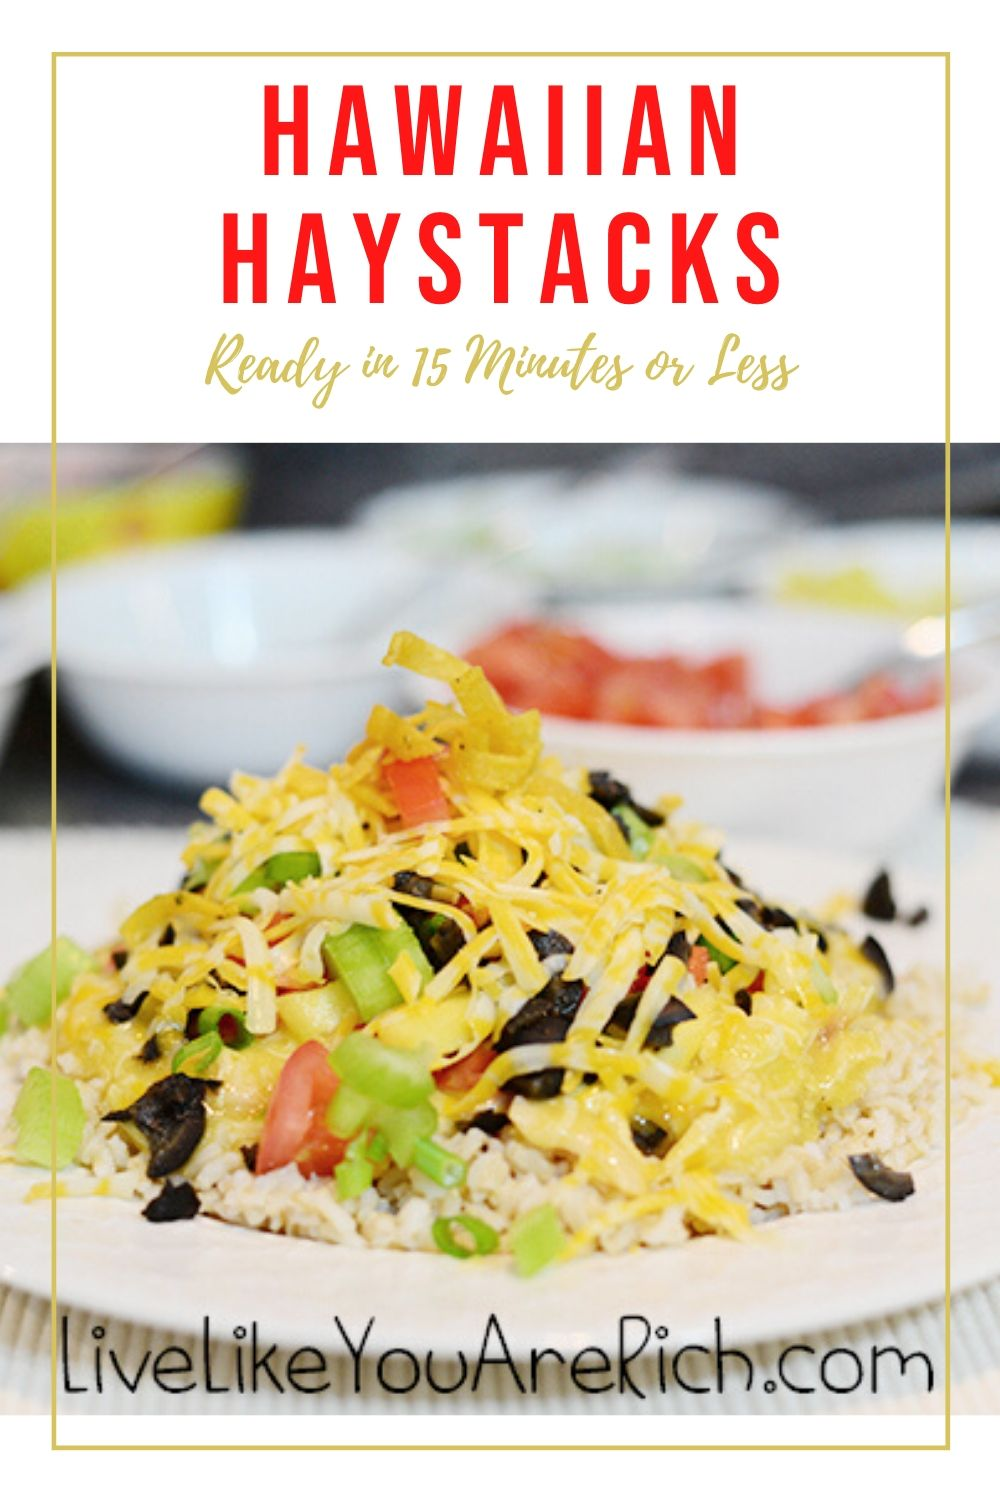 This Hawaiian Haystacks recipe has been in the family for years and is very easy to make. Many are looking for quick yet healthy, filling, and delicious meals for a holiday gathering. So I decided I'd share a family favorite.